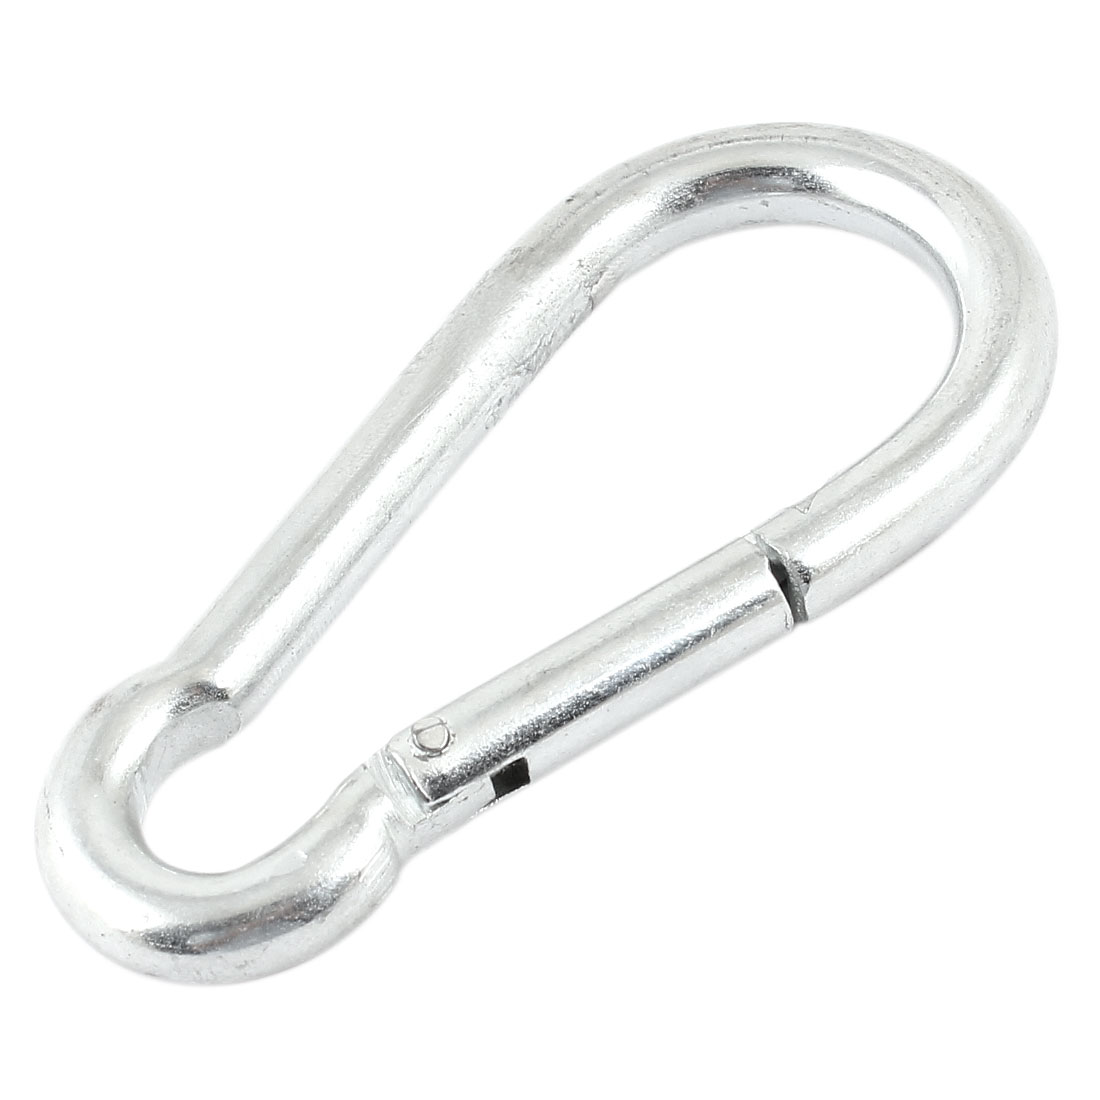 Camping Travel Hiking Silver Tone Metallic Snap Spring Carabiner Clip Hook 9mm x 90mm